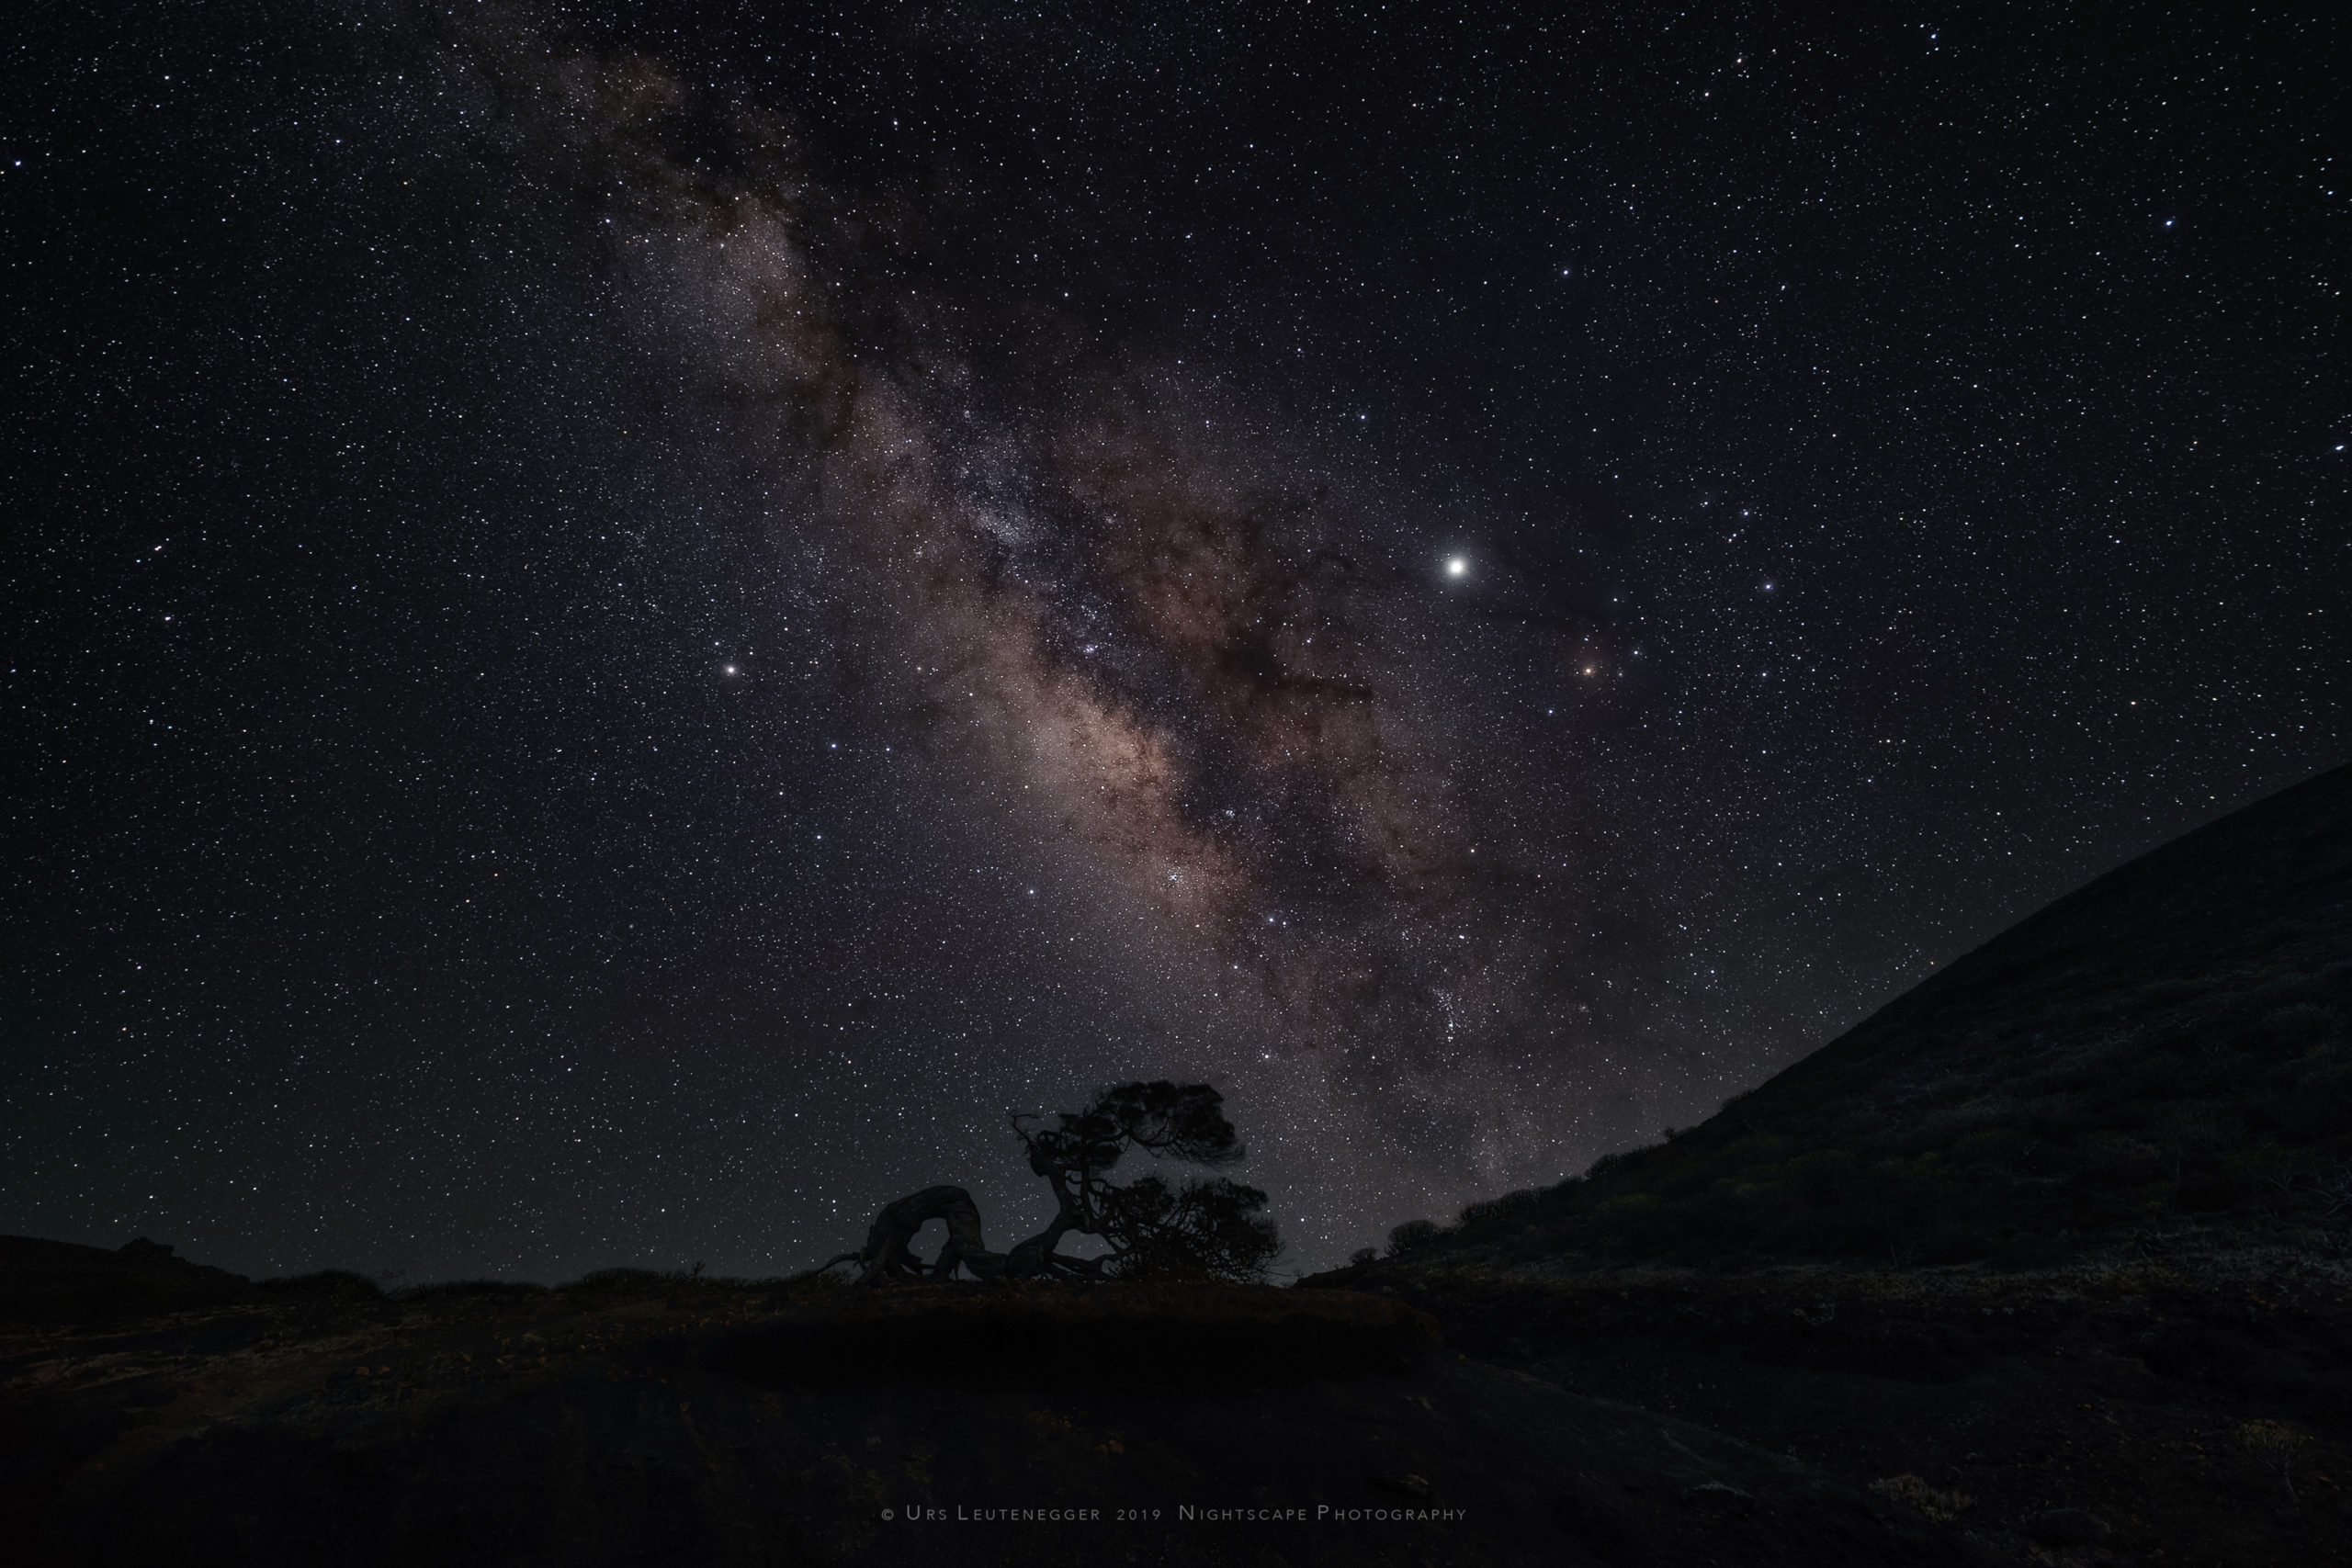 Jupiter close to Antares, Scorpio; Saturn in Sagittarius, galactic center of the Milky Way. Phoenician Juniper silhouette at horizon on El Hierro. No soft focus applied.